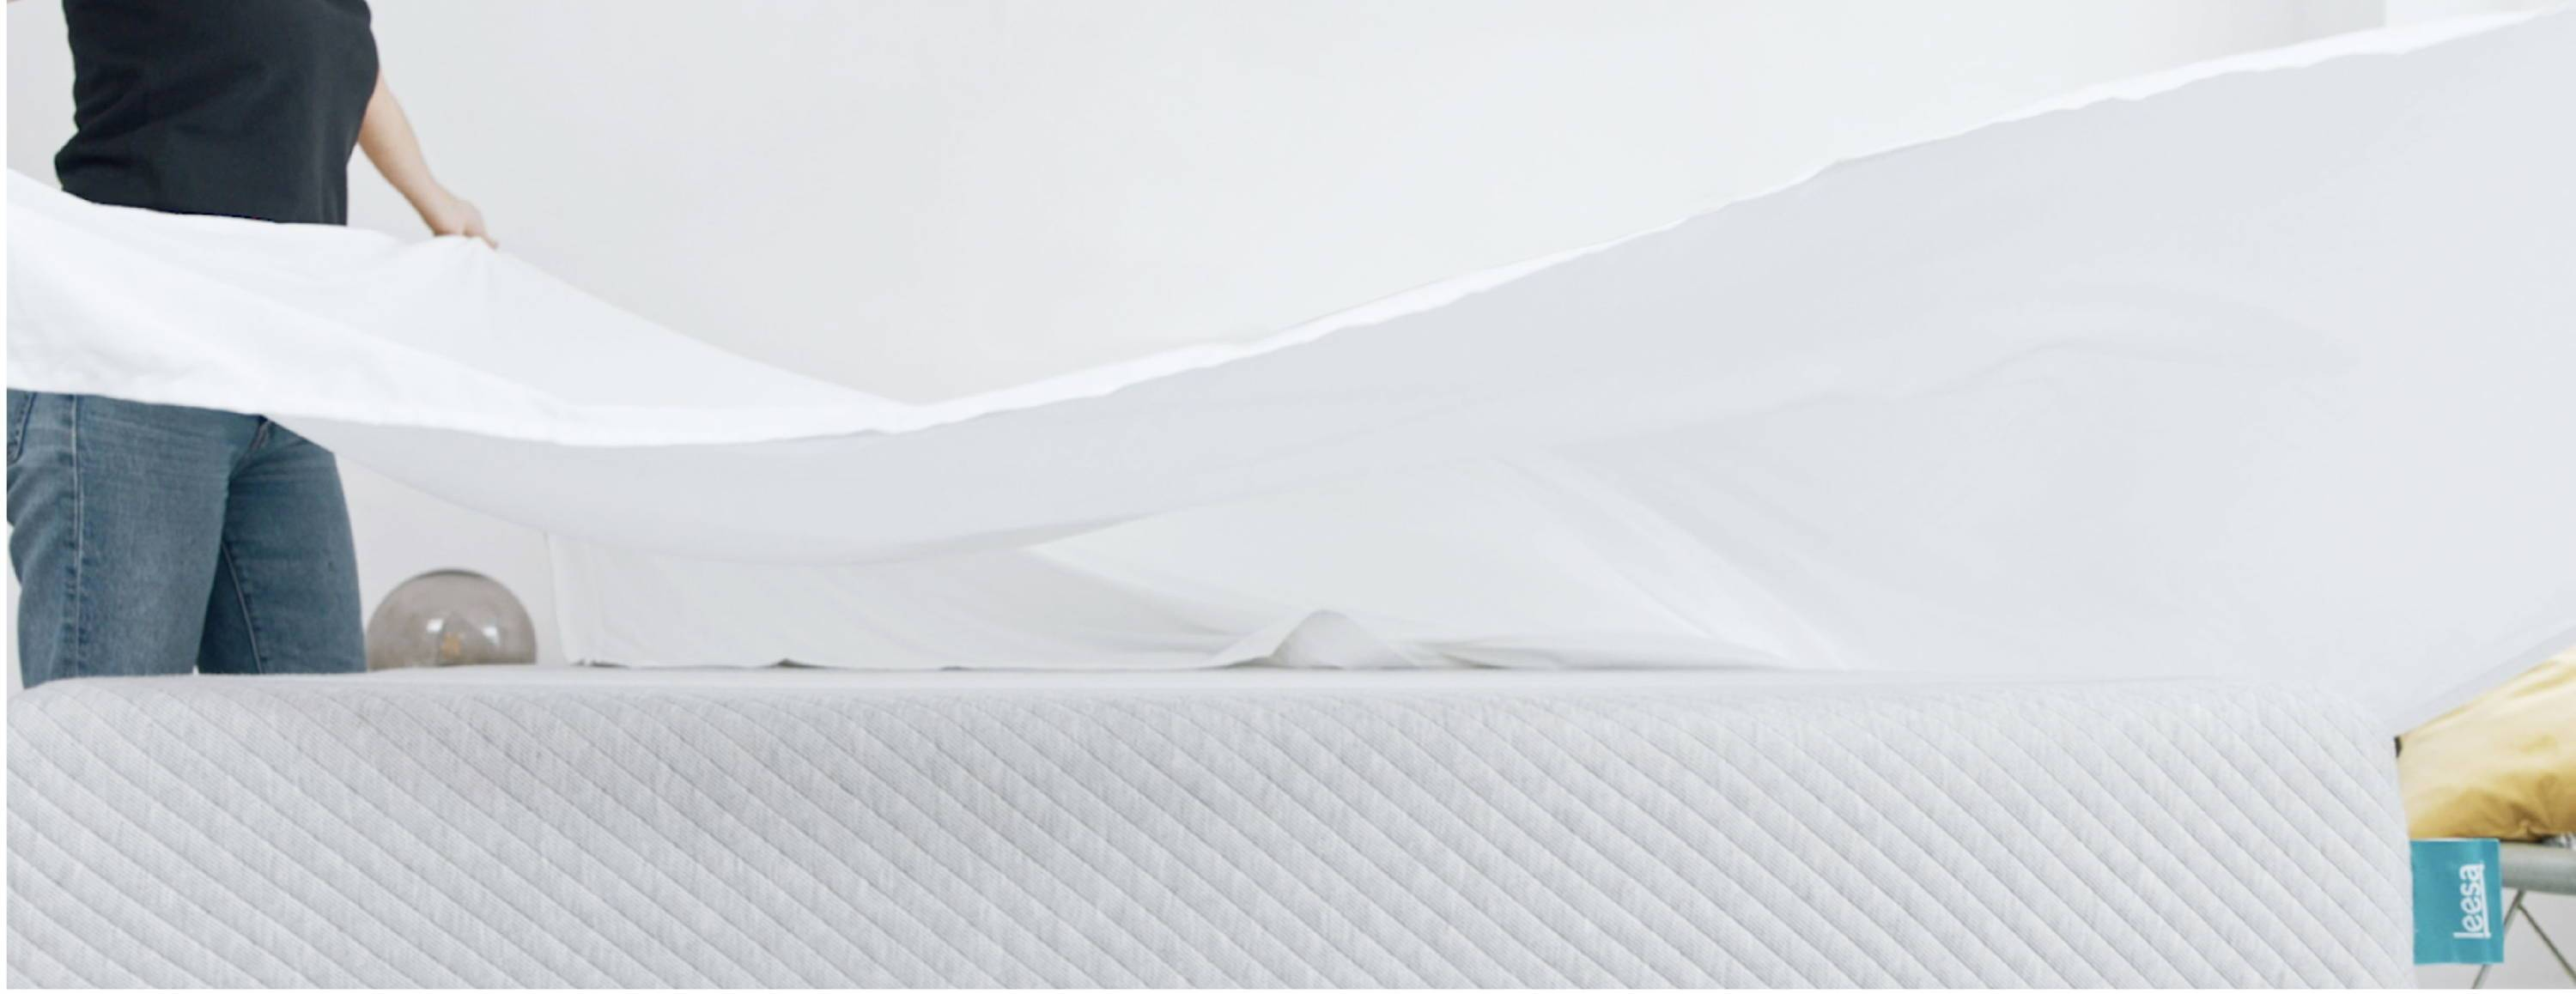 lady_fluffing_white_sheets_on_a_leesa_mattress_close_up_view